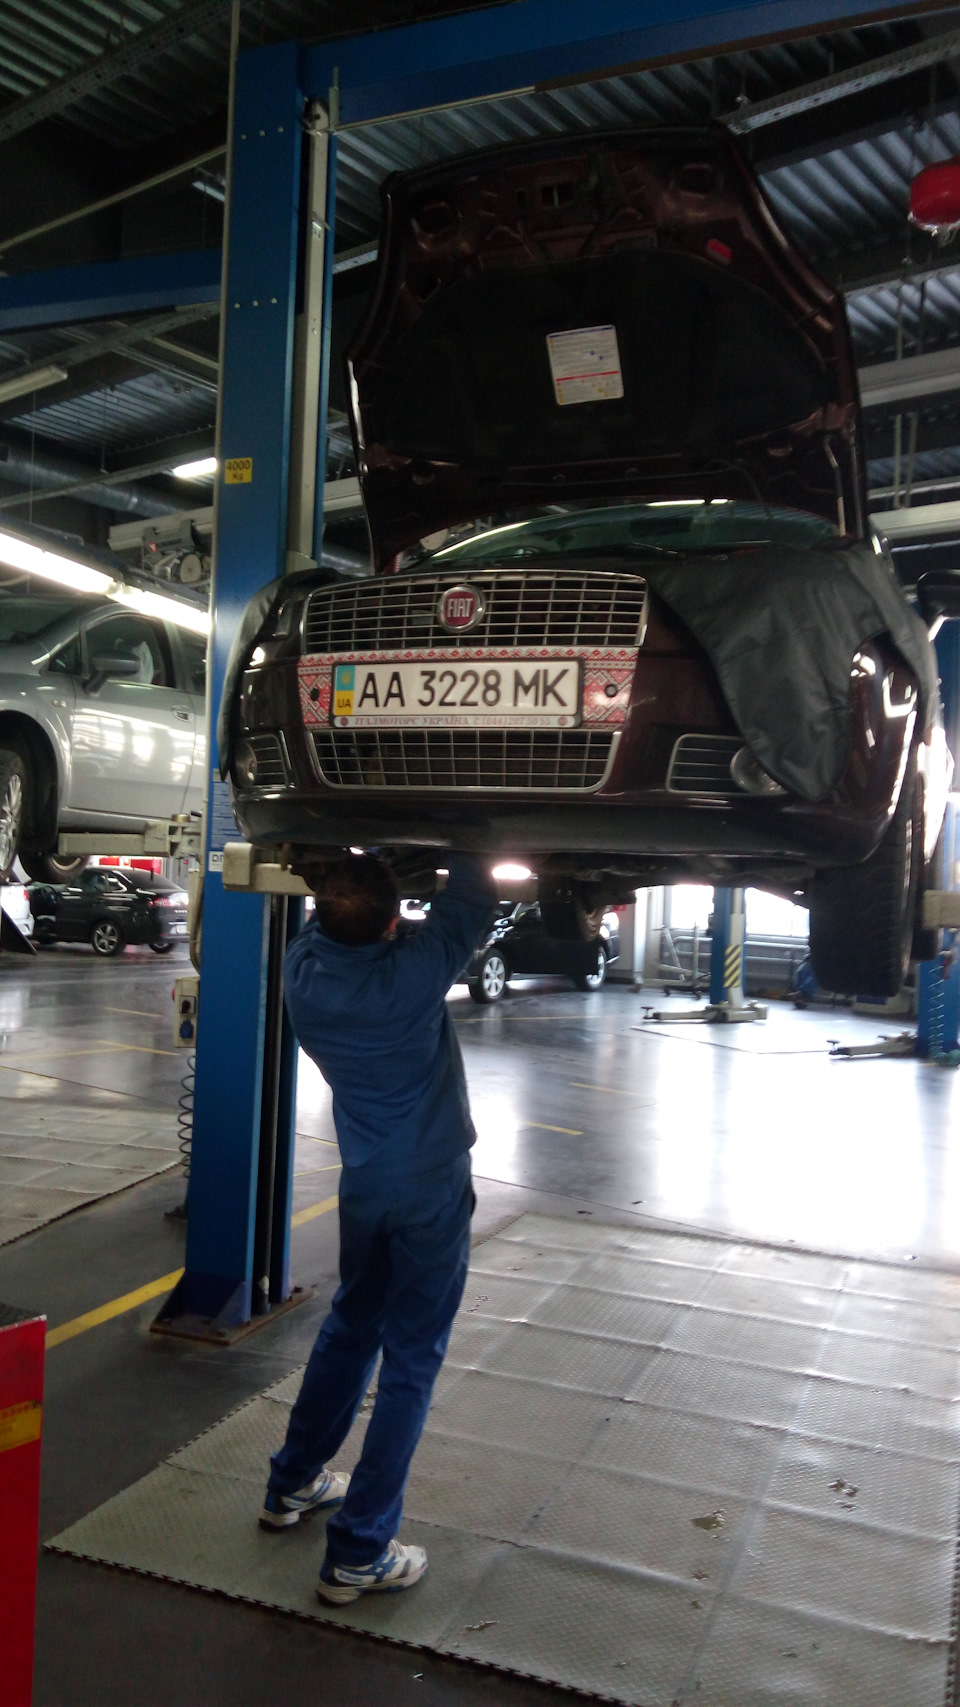 Changed Timing Belt And Tensioner Logbook Fiat Linea 2012 On Drive2 5th Winter Season Almost Finished First Time After 97240km 45 Years At